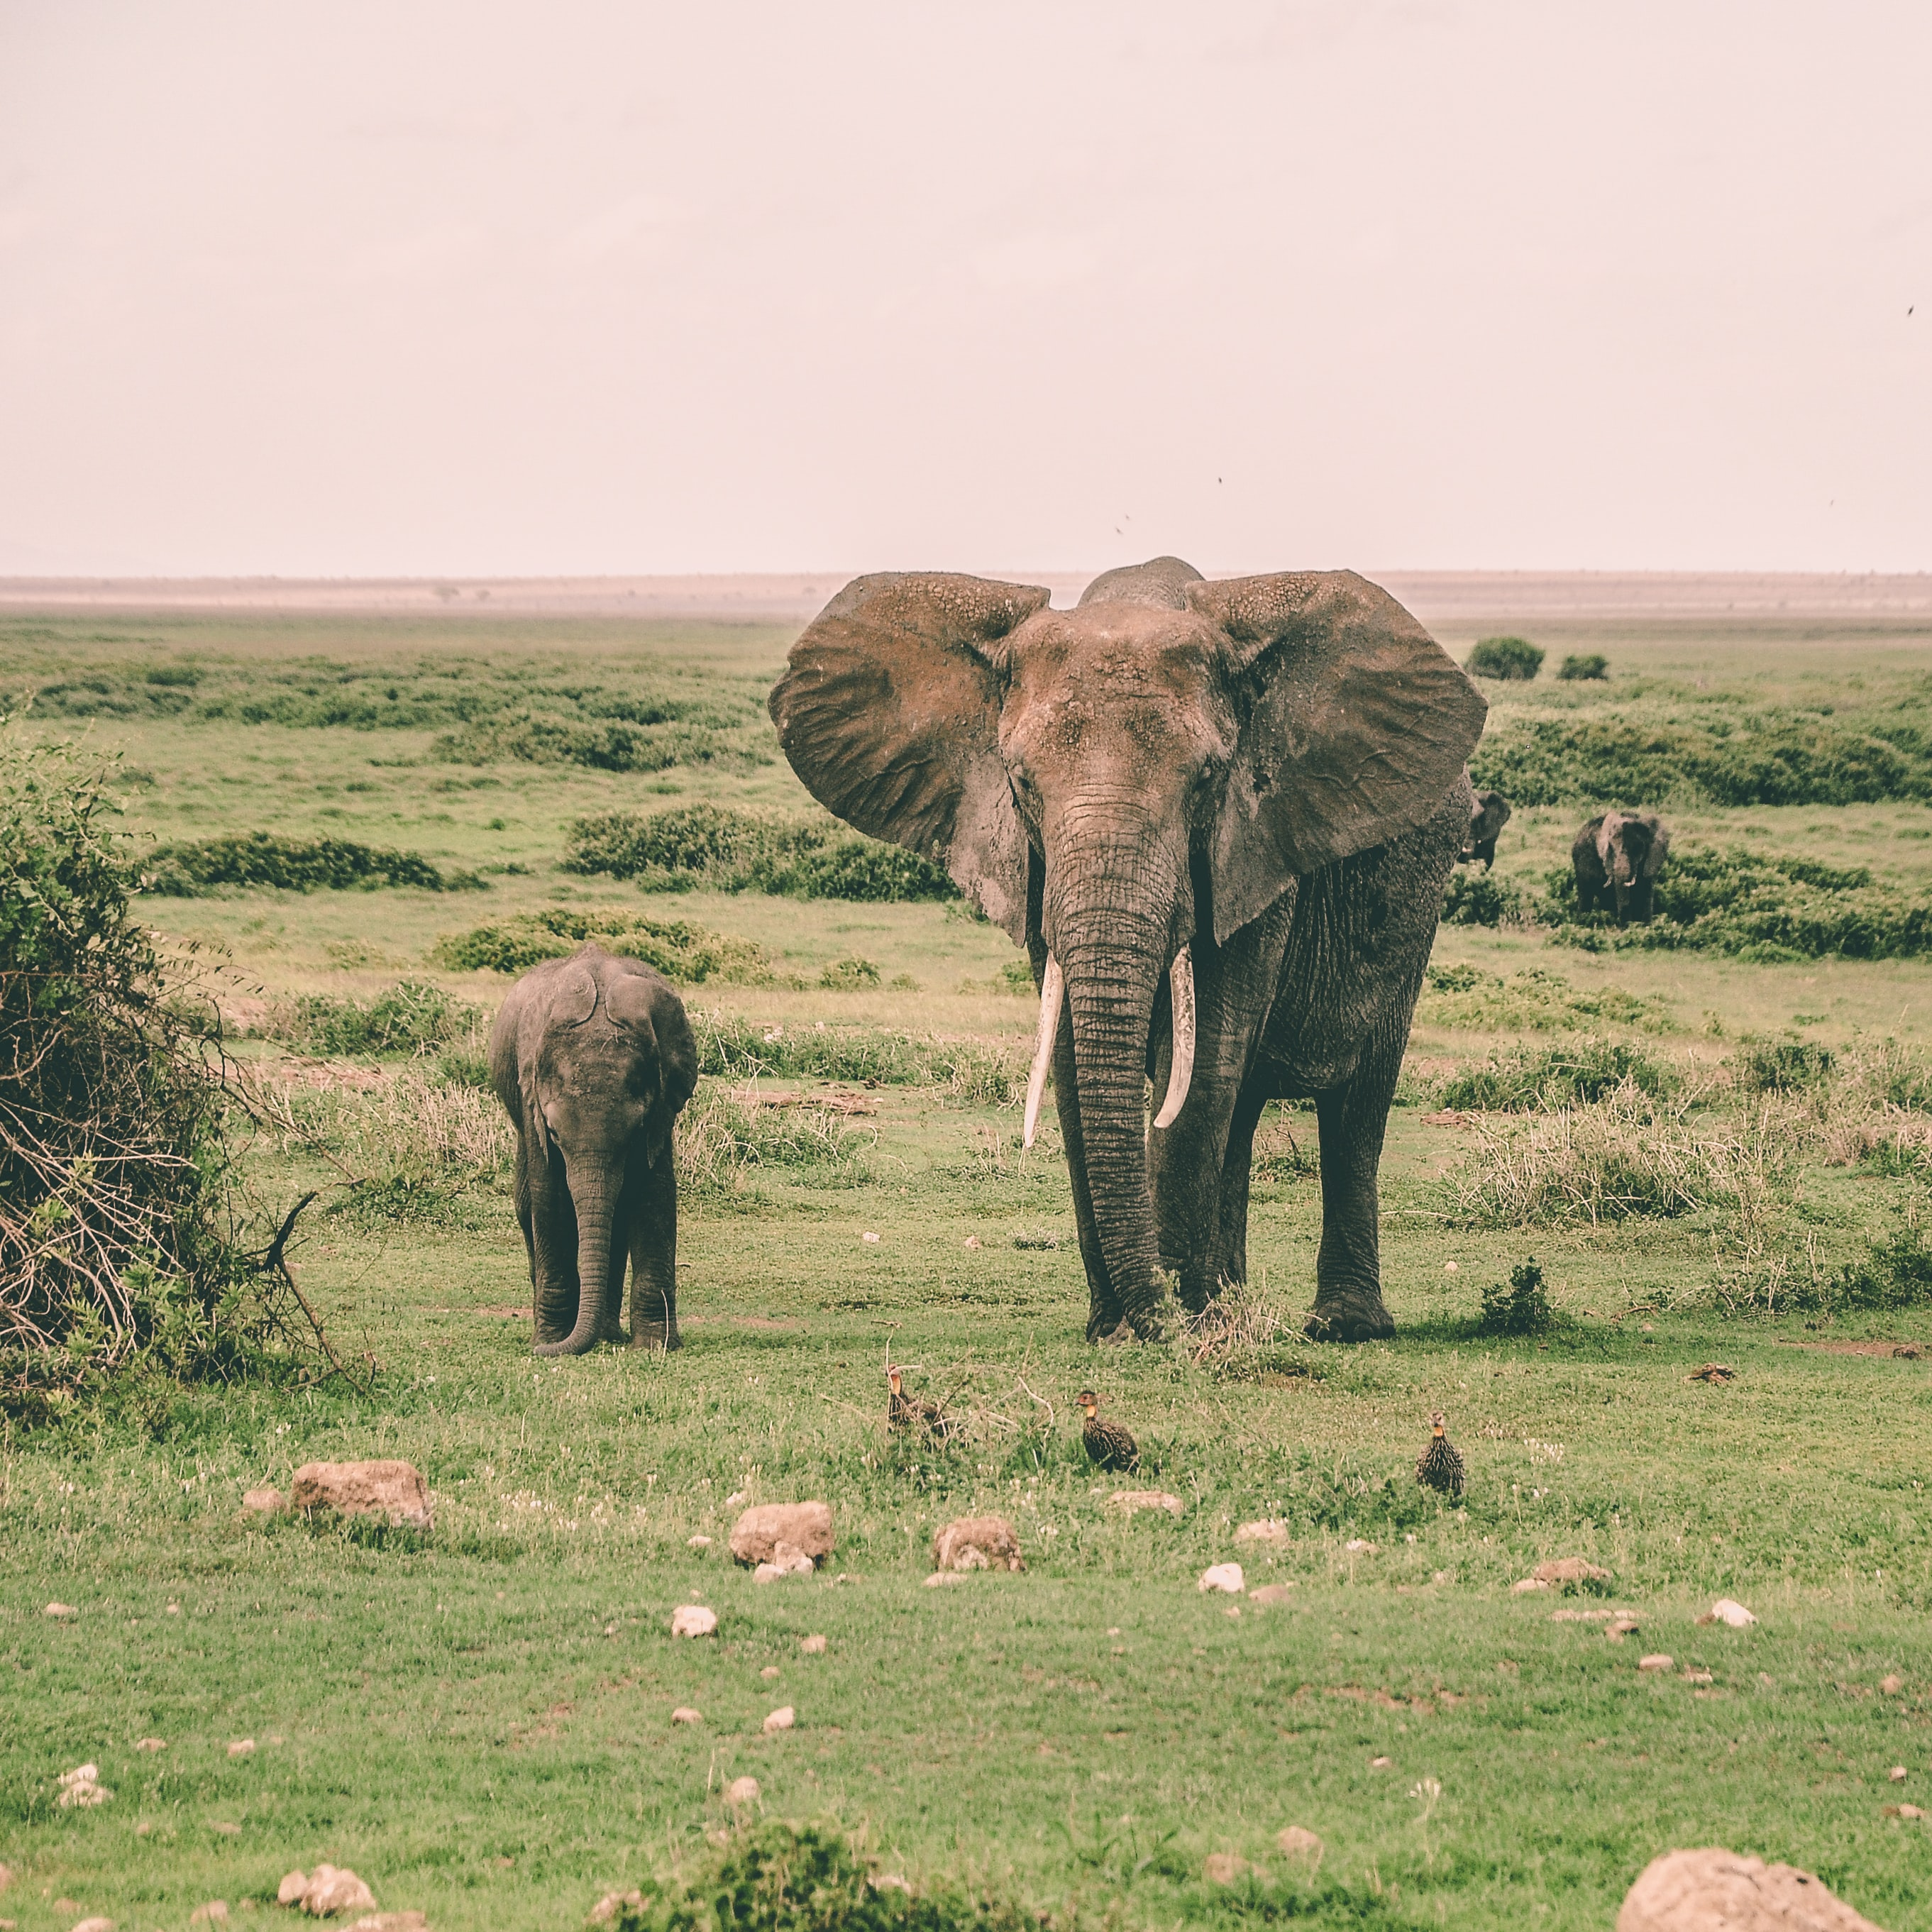 two gray elephants walking surrounded by grass during daytime